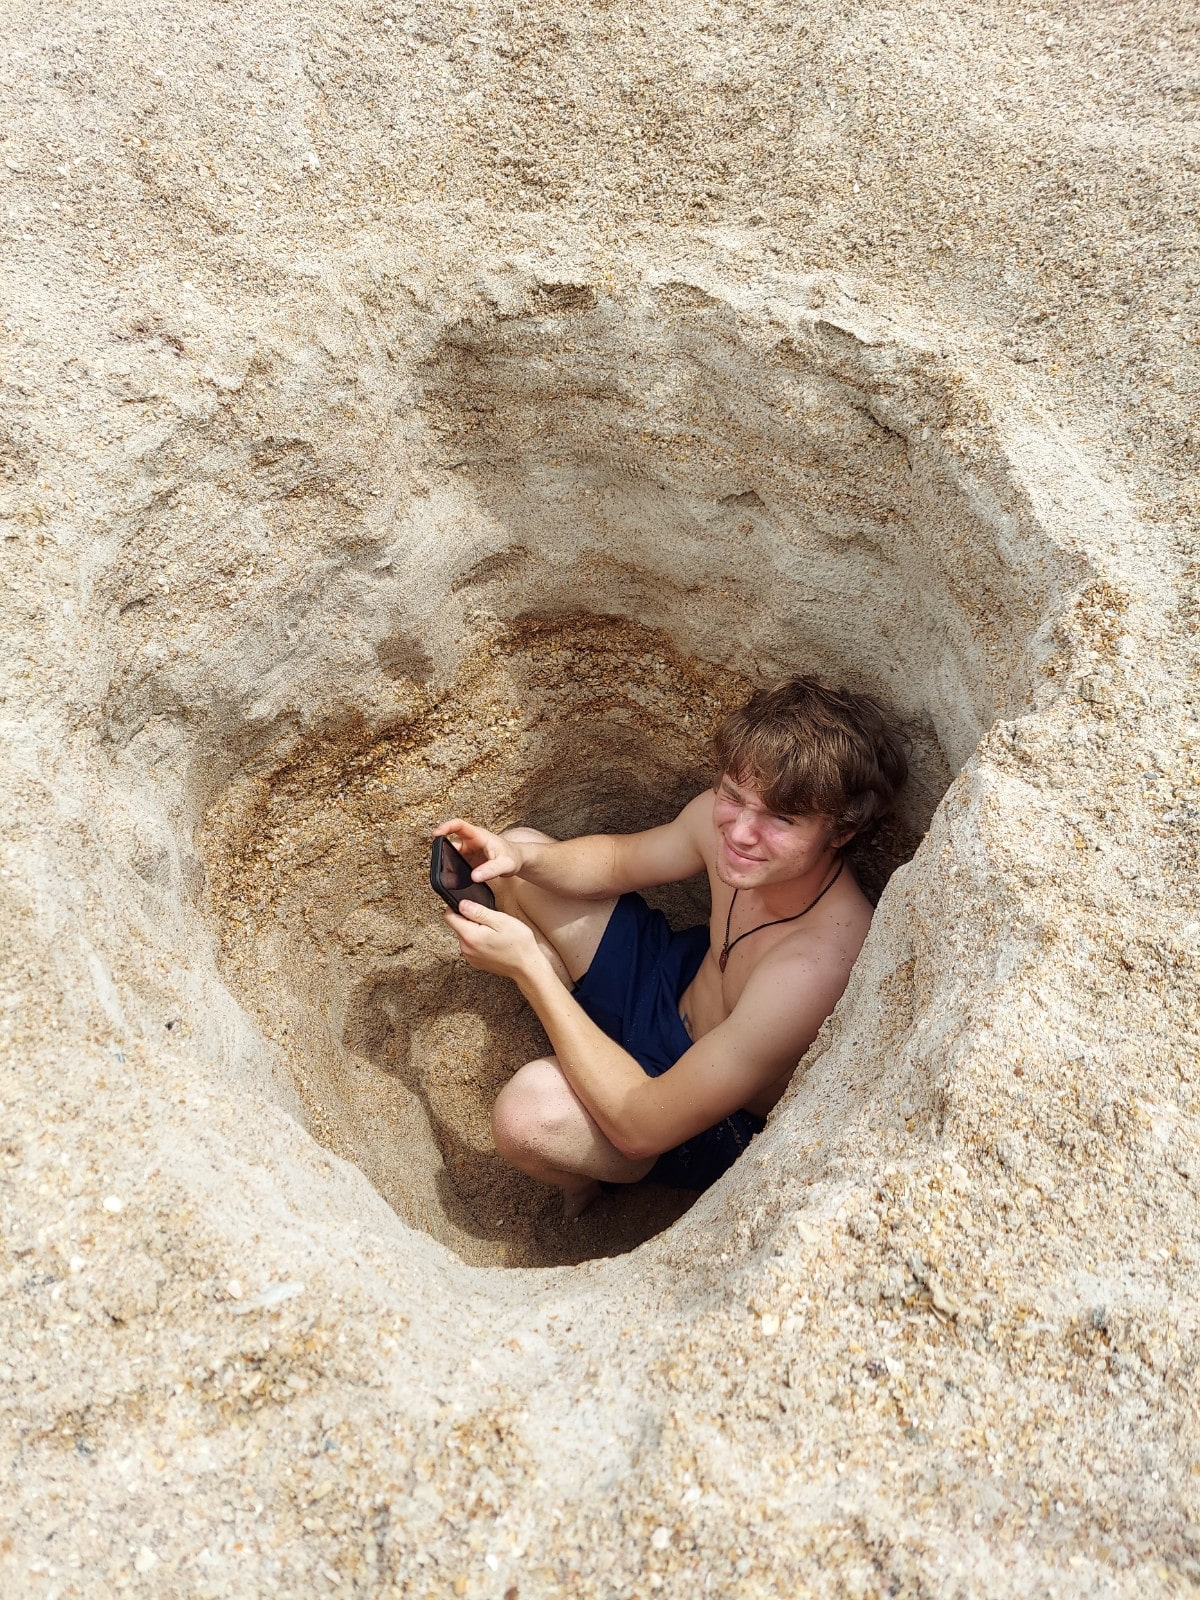 Kids digging holes in the sand on the beach in St. Augustine.